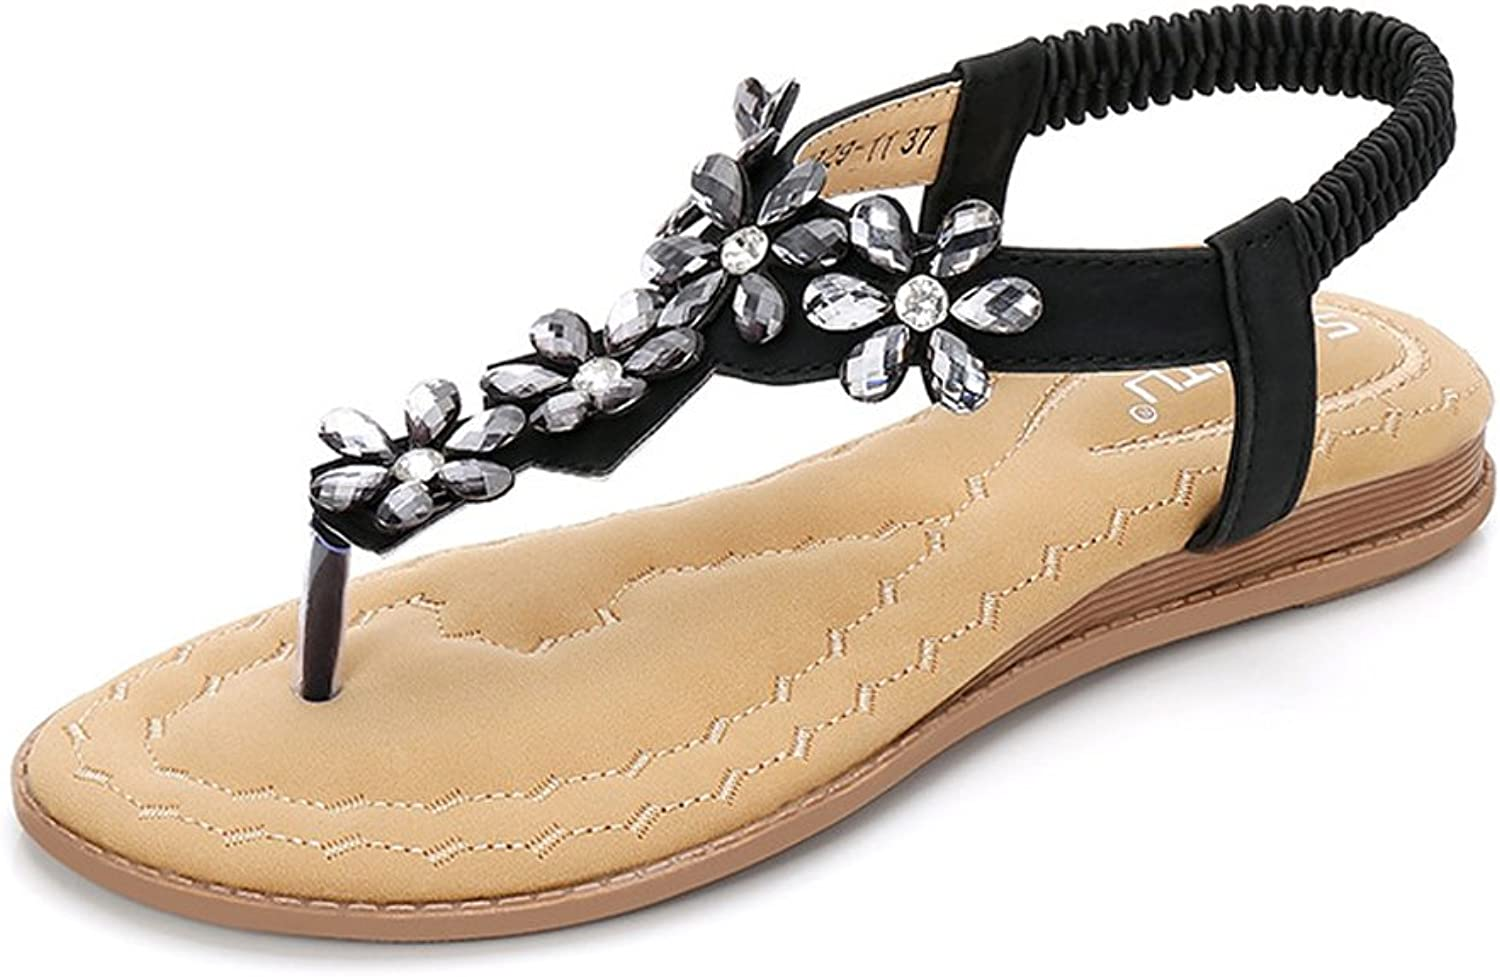 Mubeuo Women's Leather Jeweled Summer Floral Ladies Sandles Thong Sandals